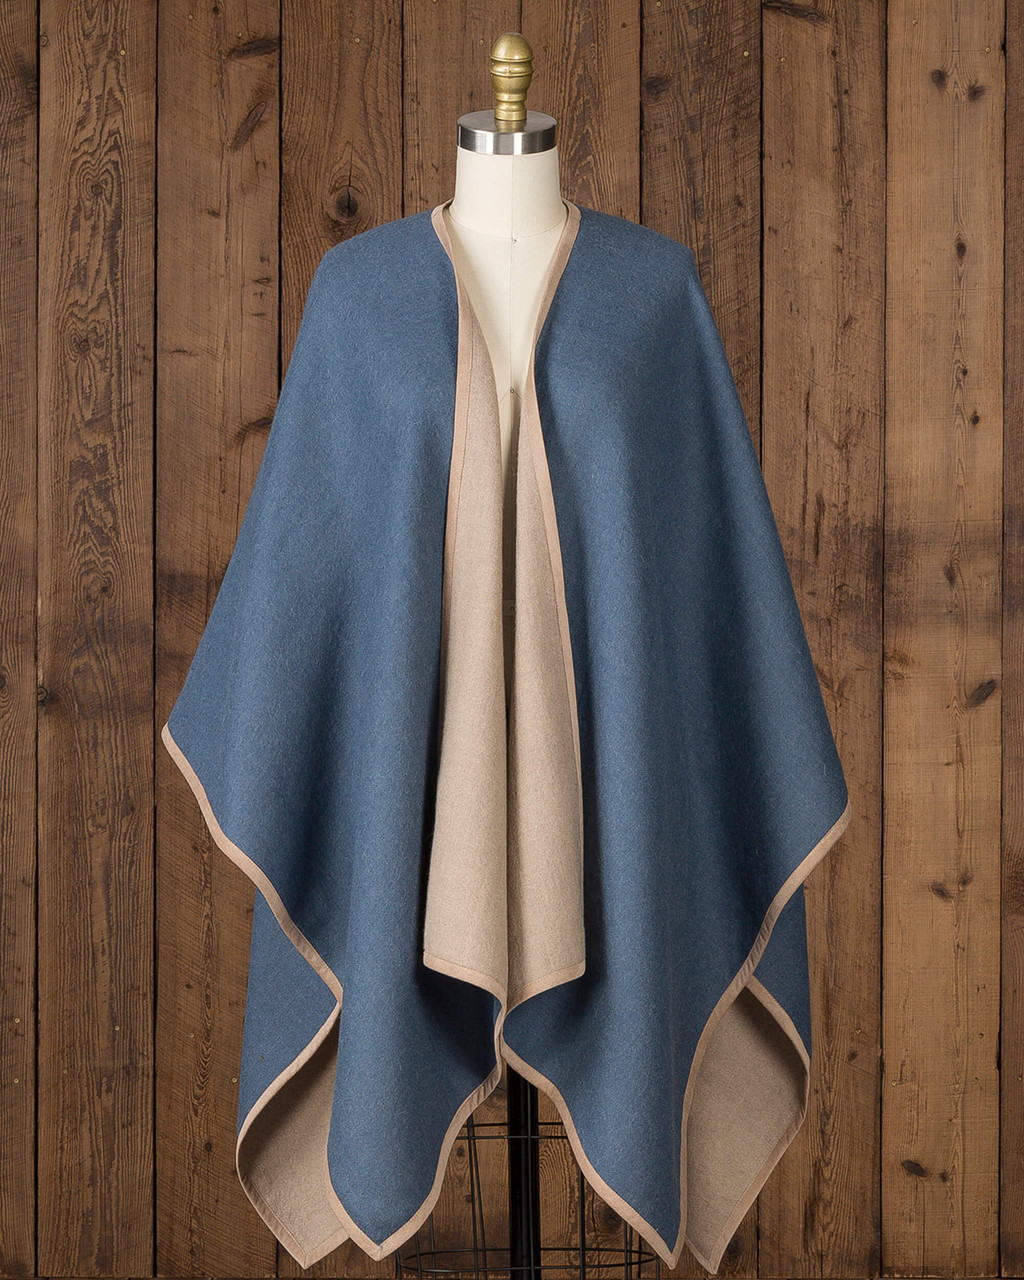 Alicia Adams Alpaca Vienna Cape, alpaca poncho cape for women, alpaca poncho, alpaca poncho womens, alpaca vs cashmere, dutch blue and light taupe womens cape